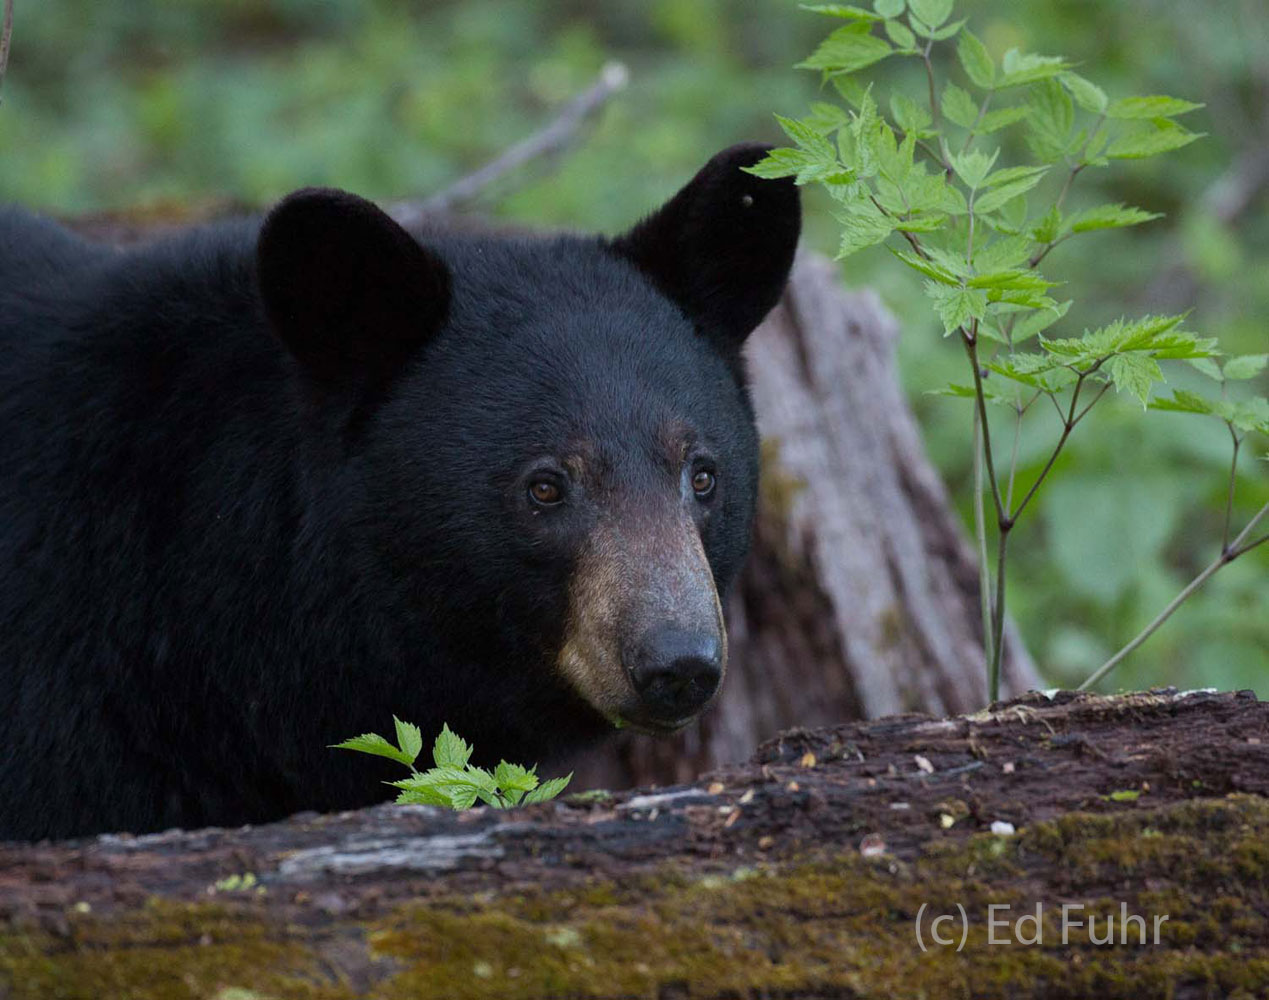 A black bear looks up from his summer foraging for roots, rodents and grubs.